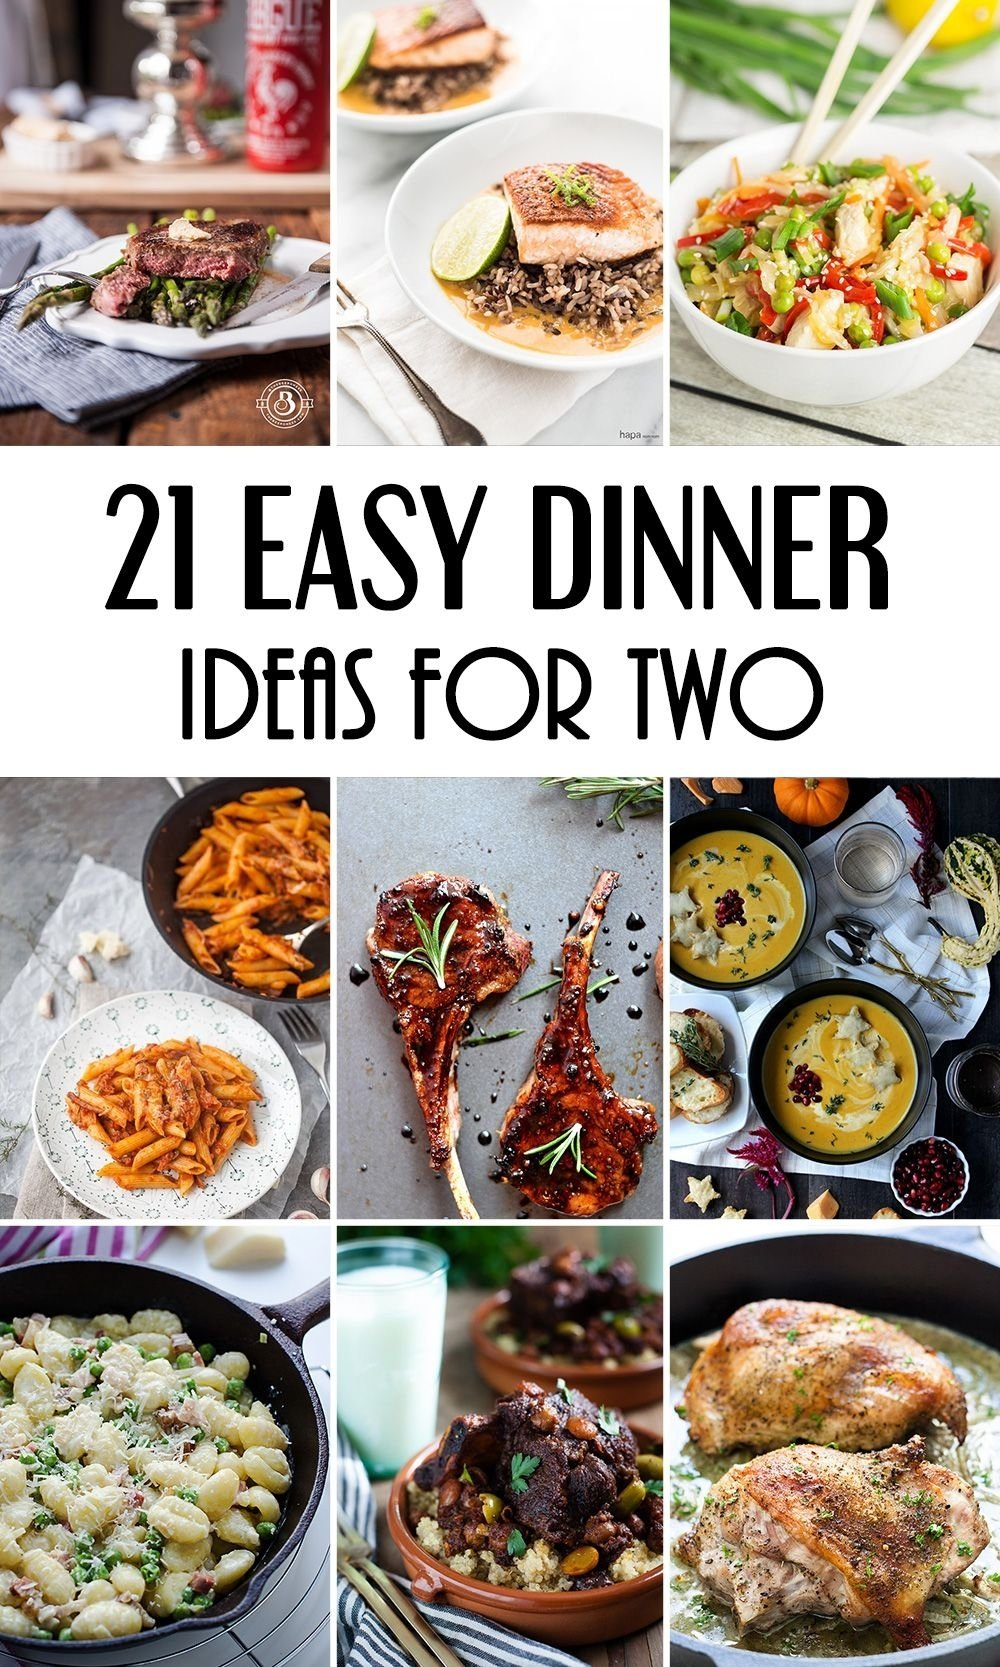 10 Stylish Great Dinner Ideas For Two 21 easy dinner ideas for two that will impress your loved one 9 2020